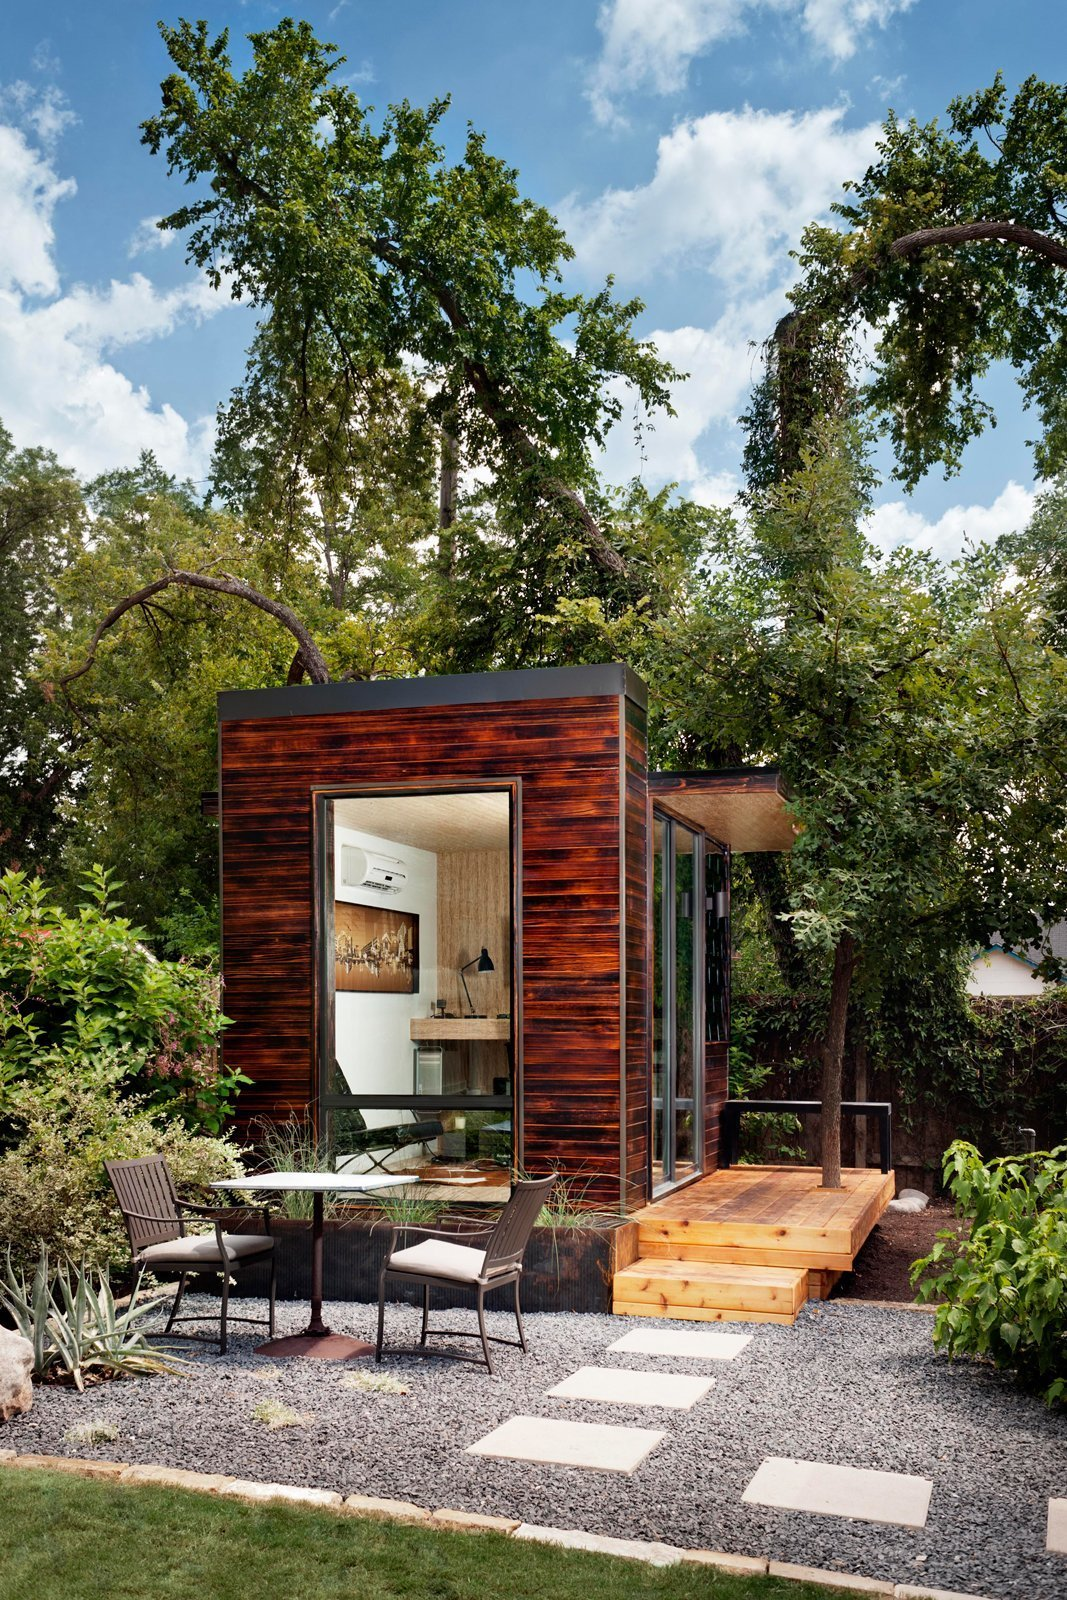 Shed & Studio, Sun Room Room Type, and Den Room Type Austin-based, modern prefab designer Sett Studio offers these structures, complete with charred wood siding, floor-to-ceiling windows, and bamboo floors, that can be set up in backyard and used for an extra bedroom, a yoga studio, a hydroponics growing area or an office space.  Photo 6 of 9 in 8 Tiny Sheds and Studios Used as Home Offices or Creative Retreats